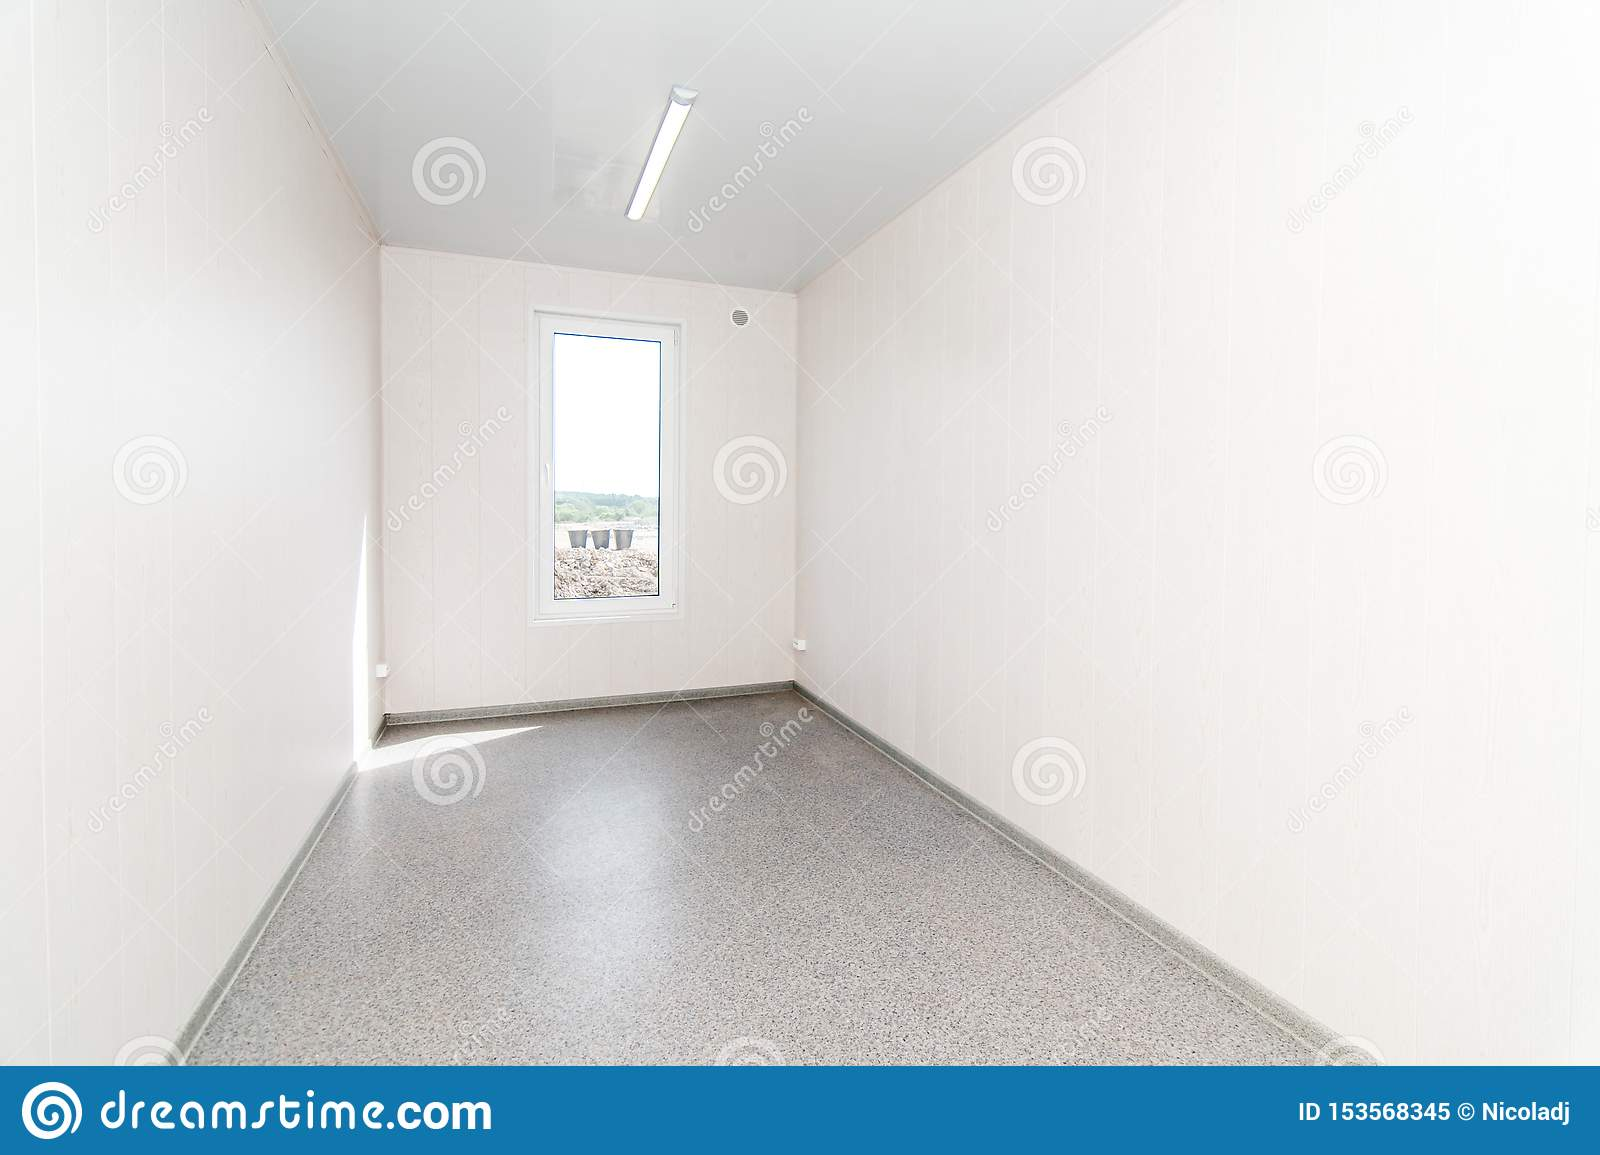 Light white empty office room with bright lighting